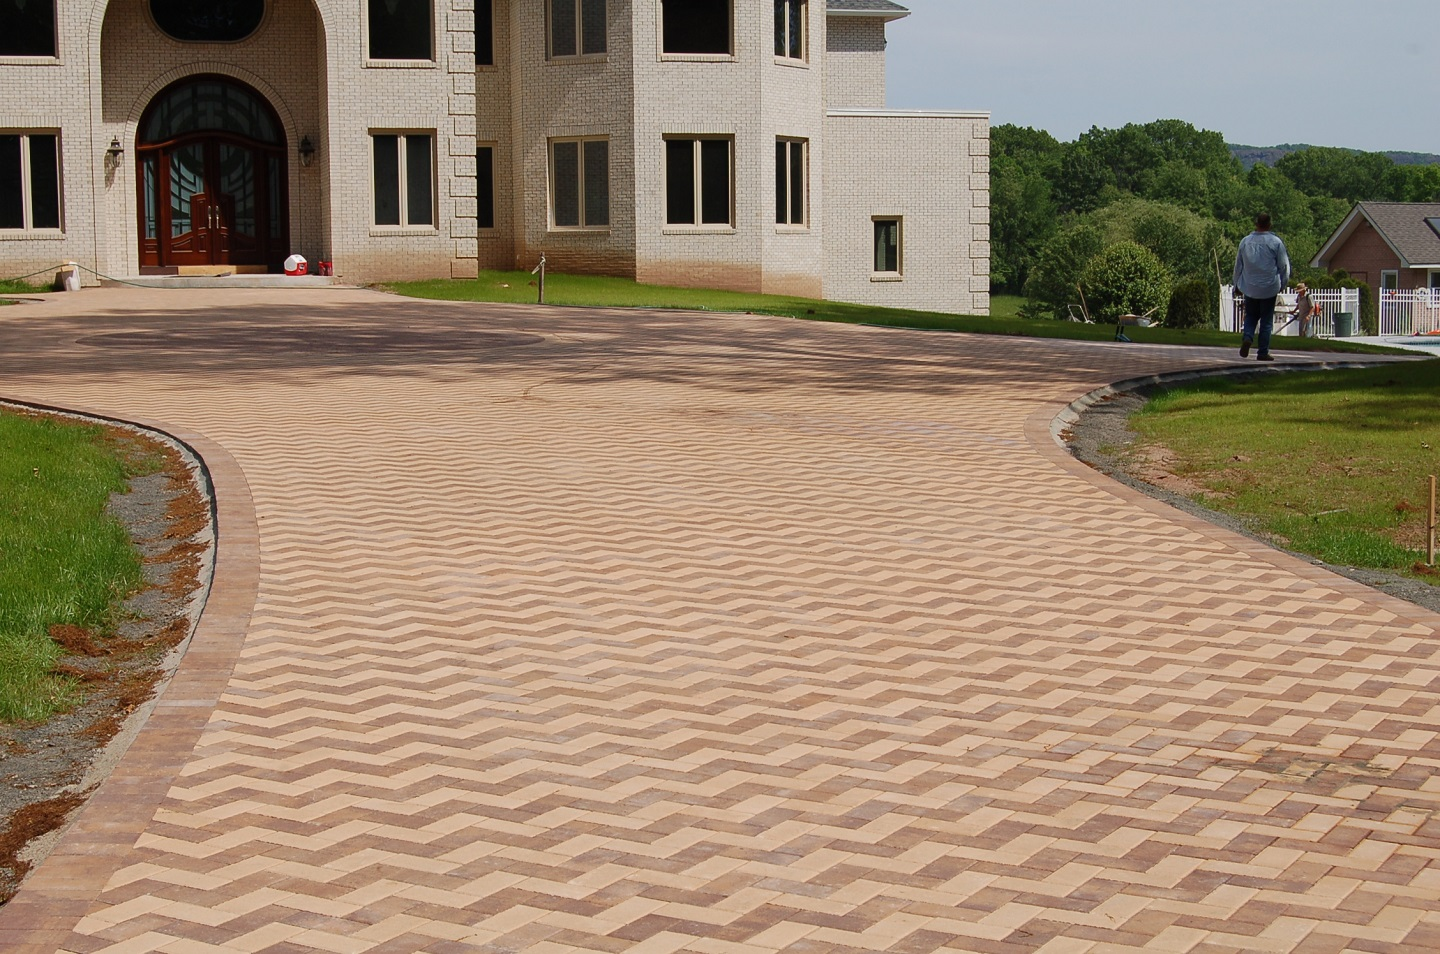 Top qualtiy driveway pavers in Newington, CT